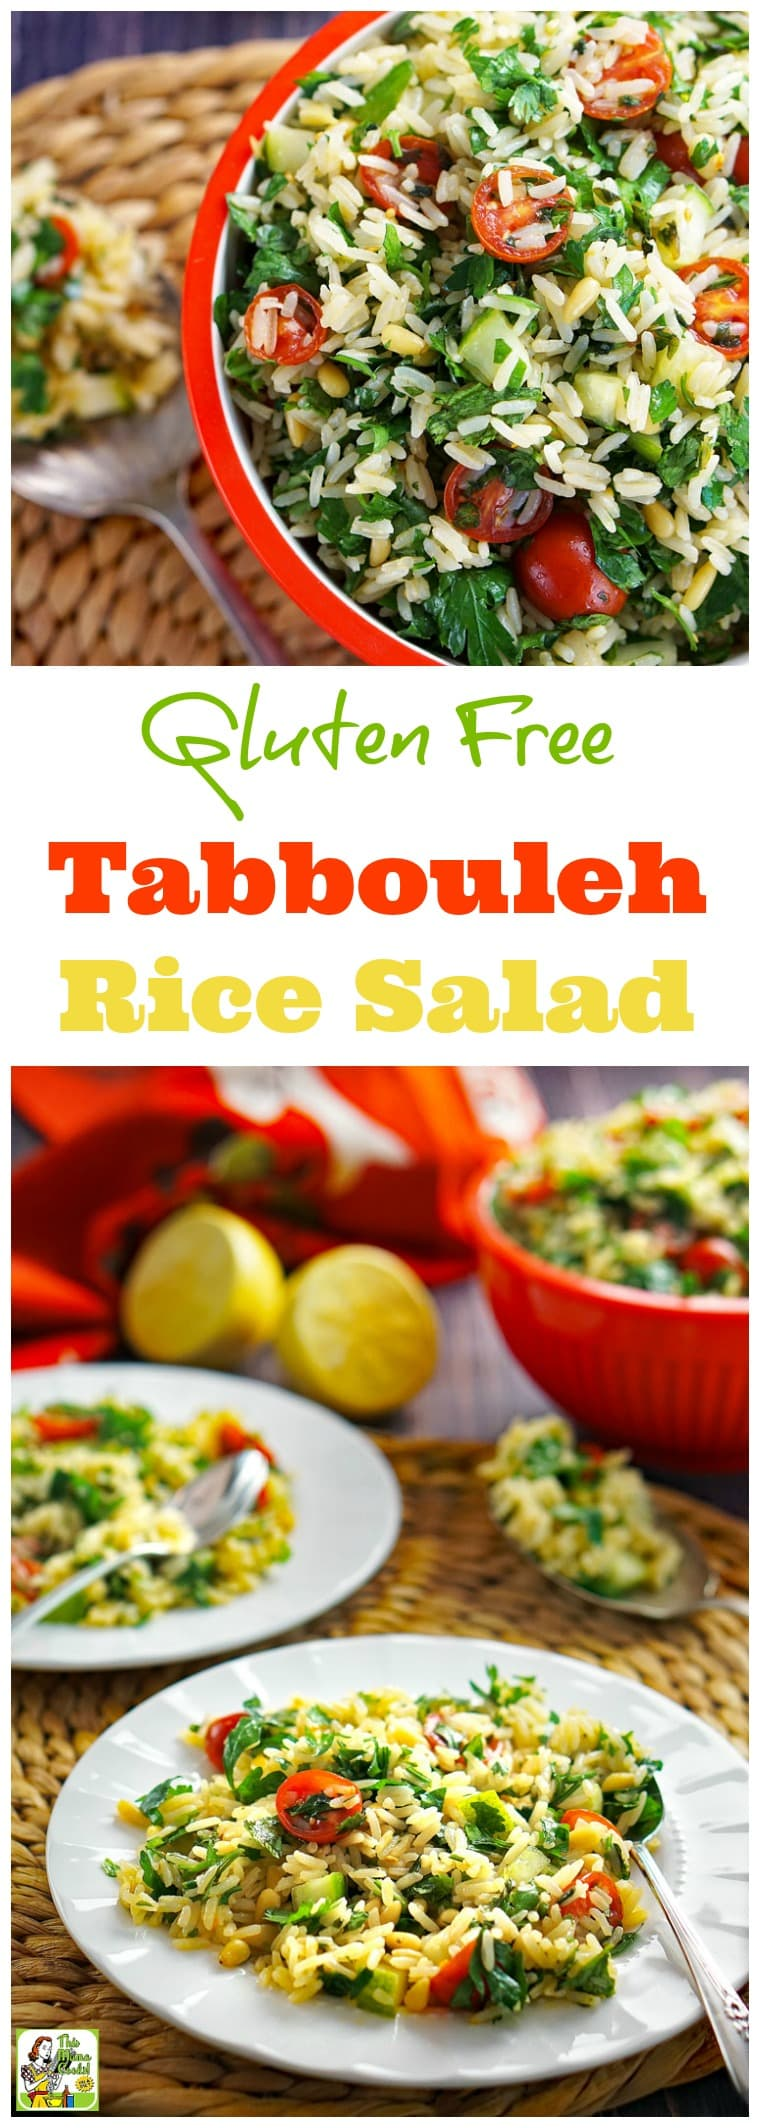 Love tabbouleh but can\'t eat couscous? You have to try this Gluten Free Tabbouleh Recipe. Click to get this rice salad recipe. This easy-to-make side salad recipe is goes great with grilled food. Serve it at your next BBQ party or bring it to a potluck.